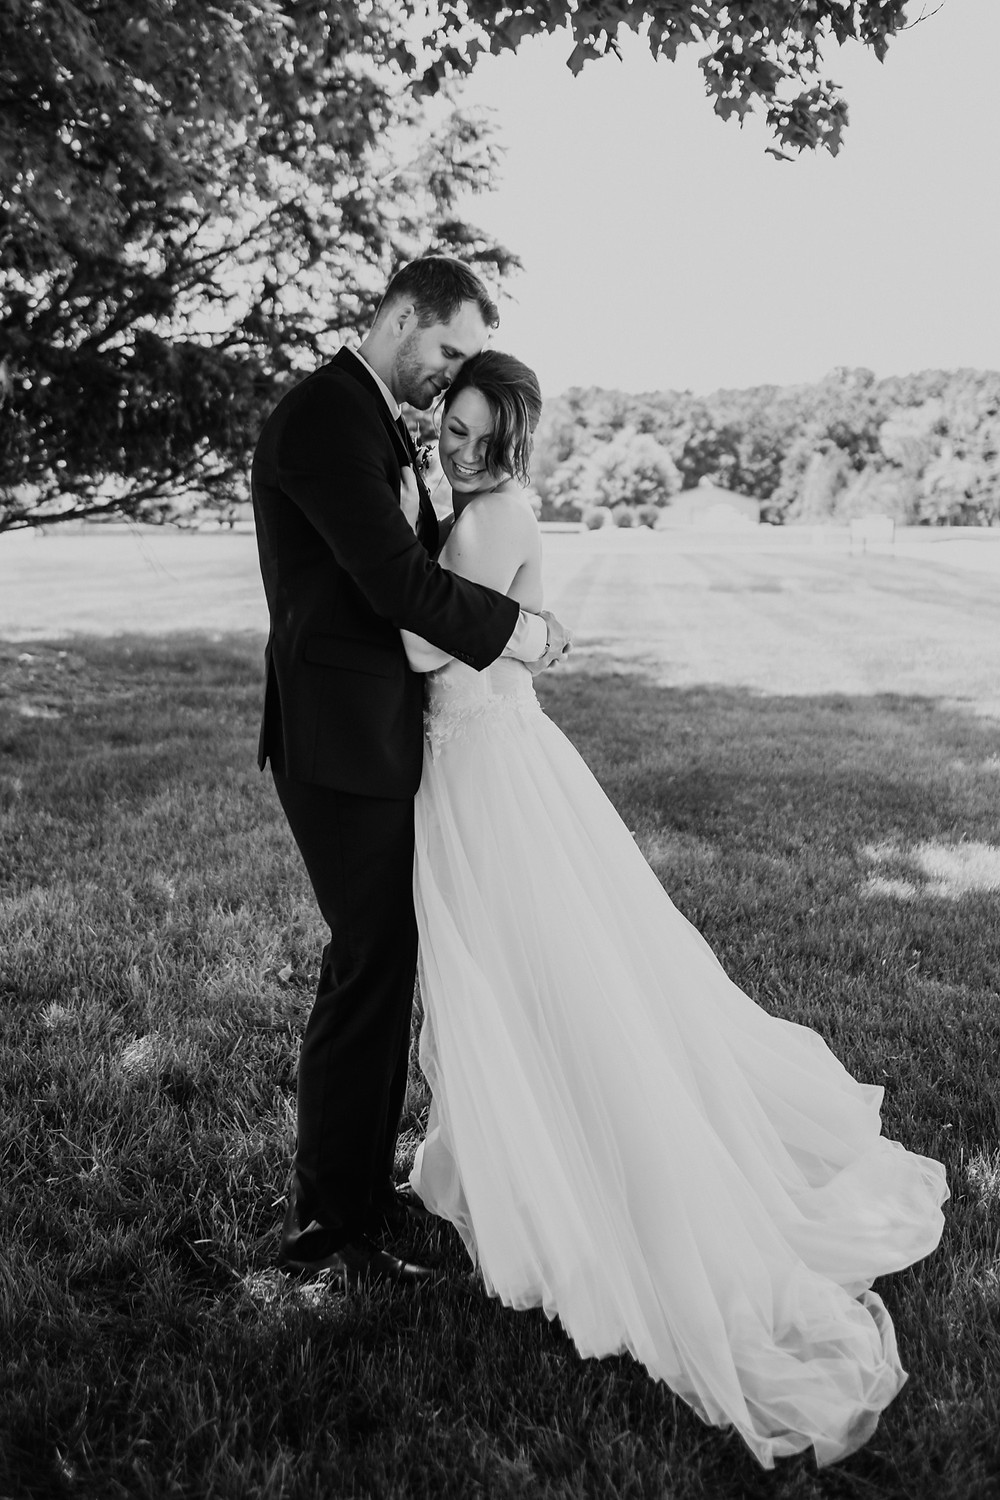 Classic wedding photography in Detroit. Photographed by Nicole Leanne Photography.